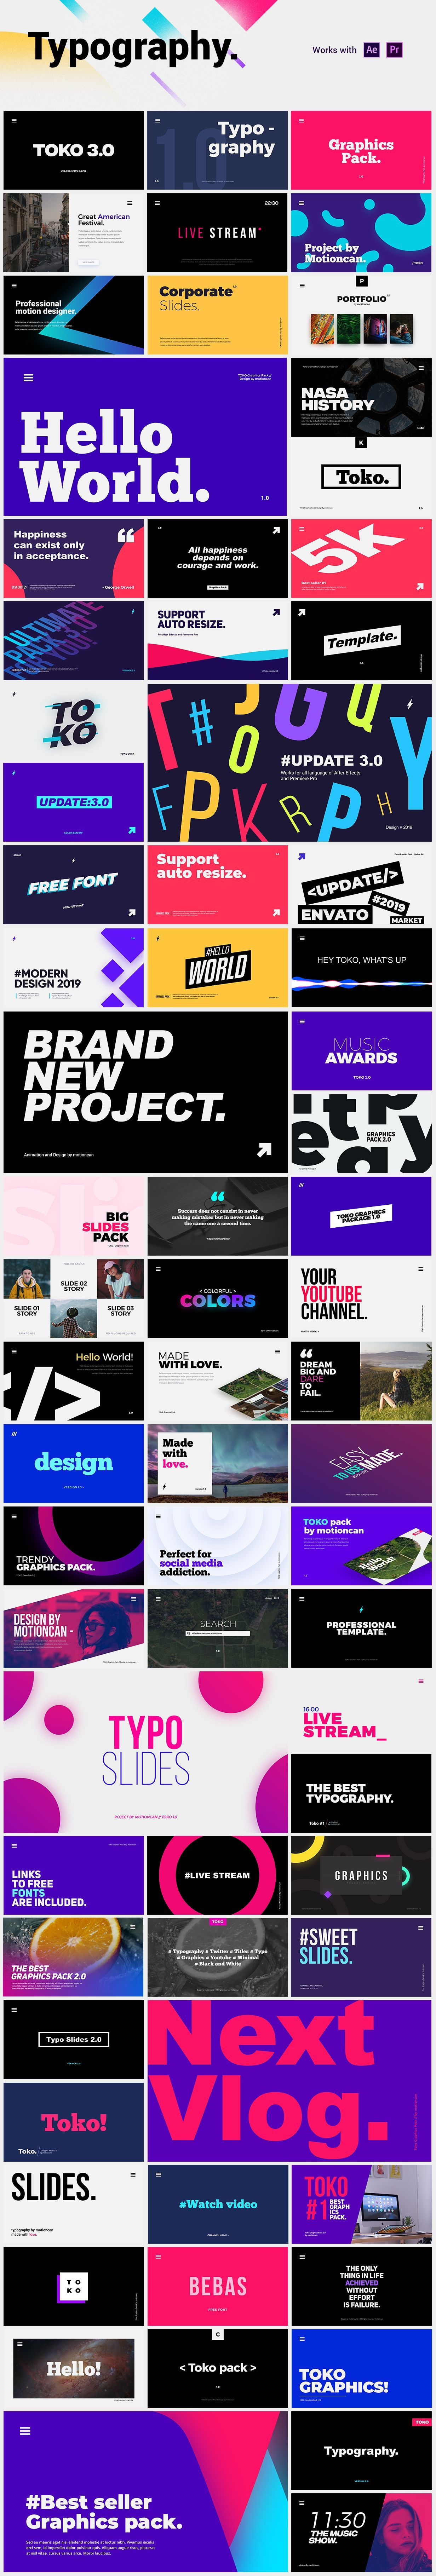 Graphics pack typography graphic graphic logo reveal